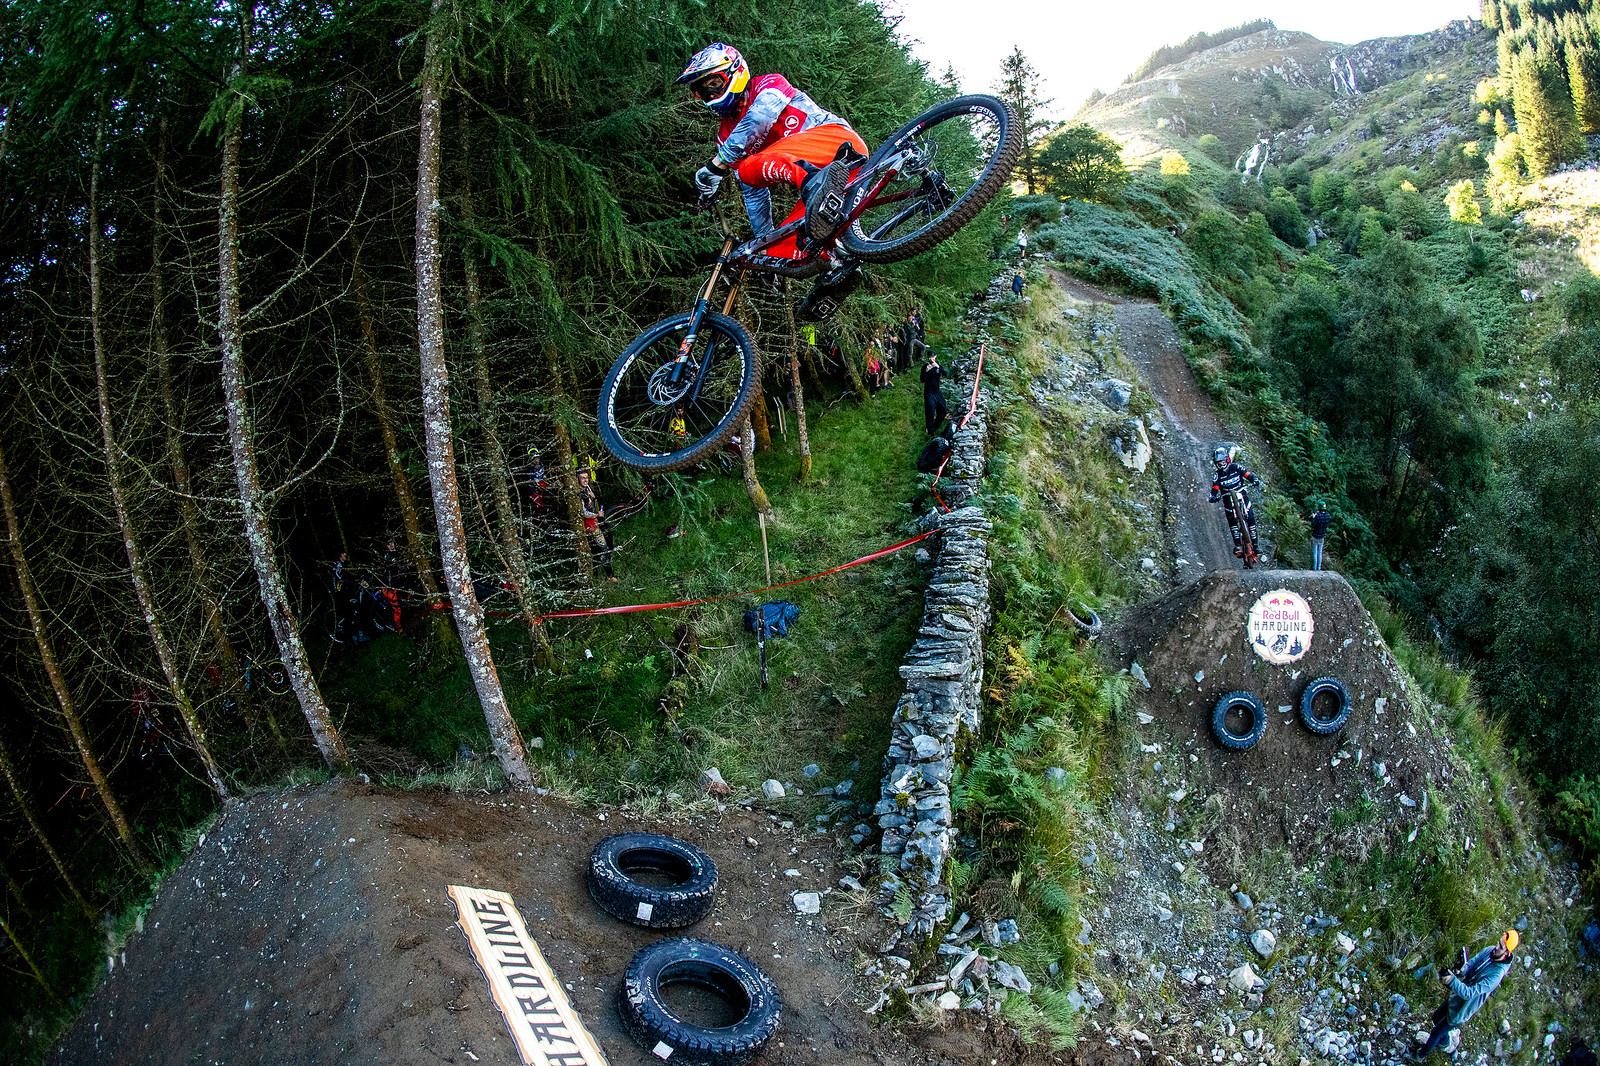 Steezy Geezy - BIG AIR PHOTO BLAST - RED BULL HARDLINE - Mountain Biking Pictures - Vital MTB